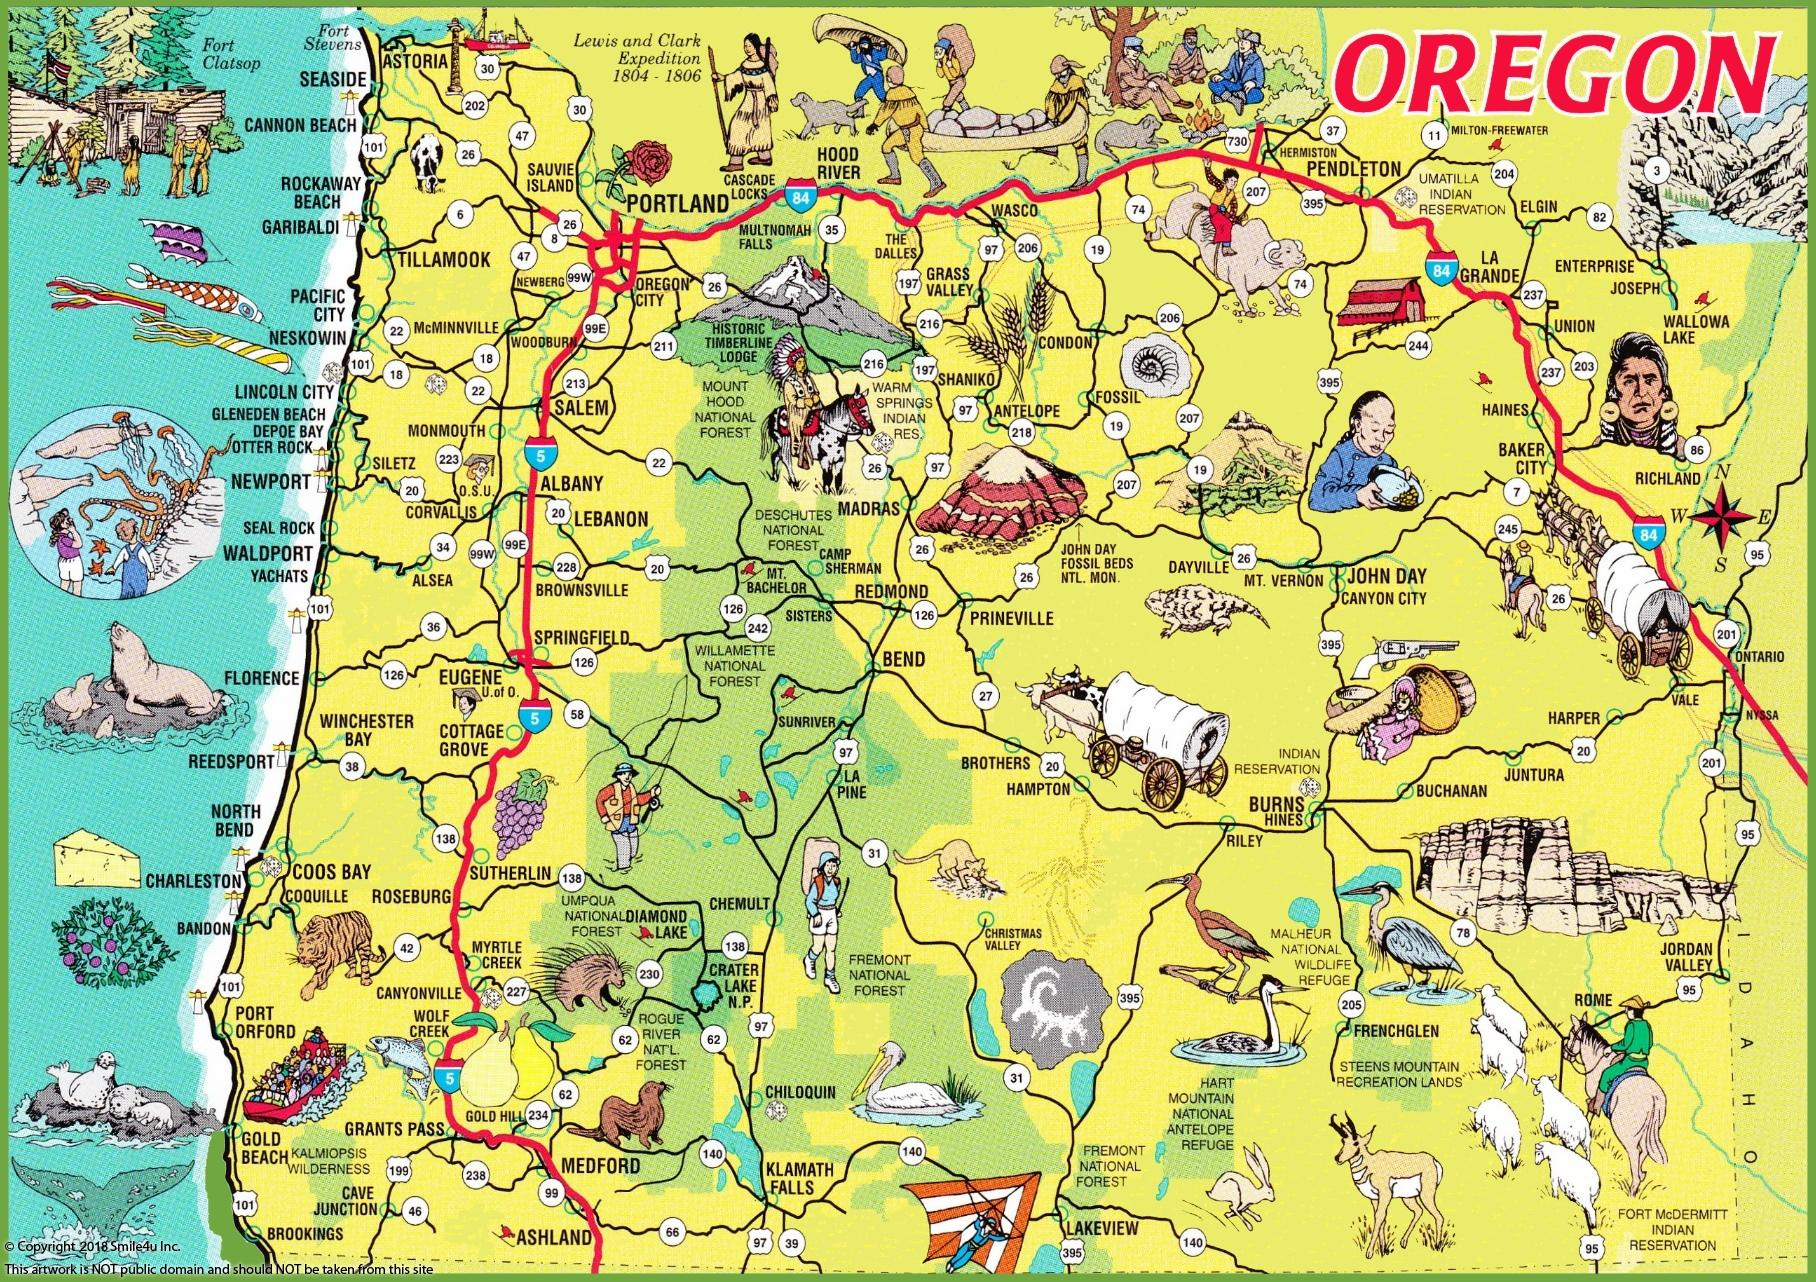 919456_watermarked_pictorial-travel-map-of-oregon.jpg